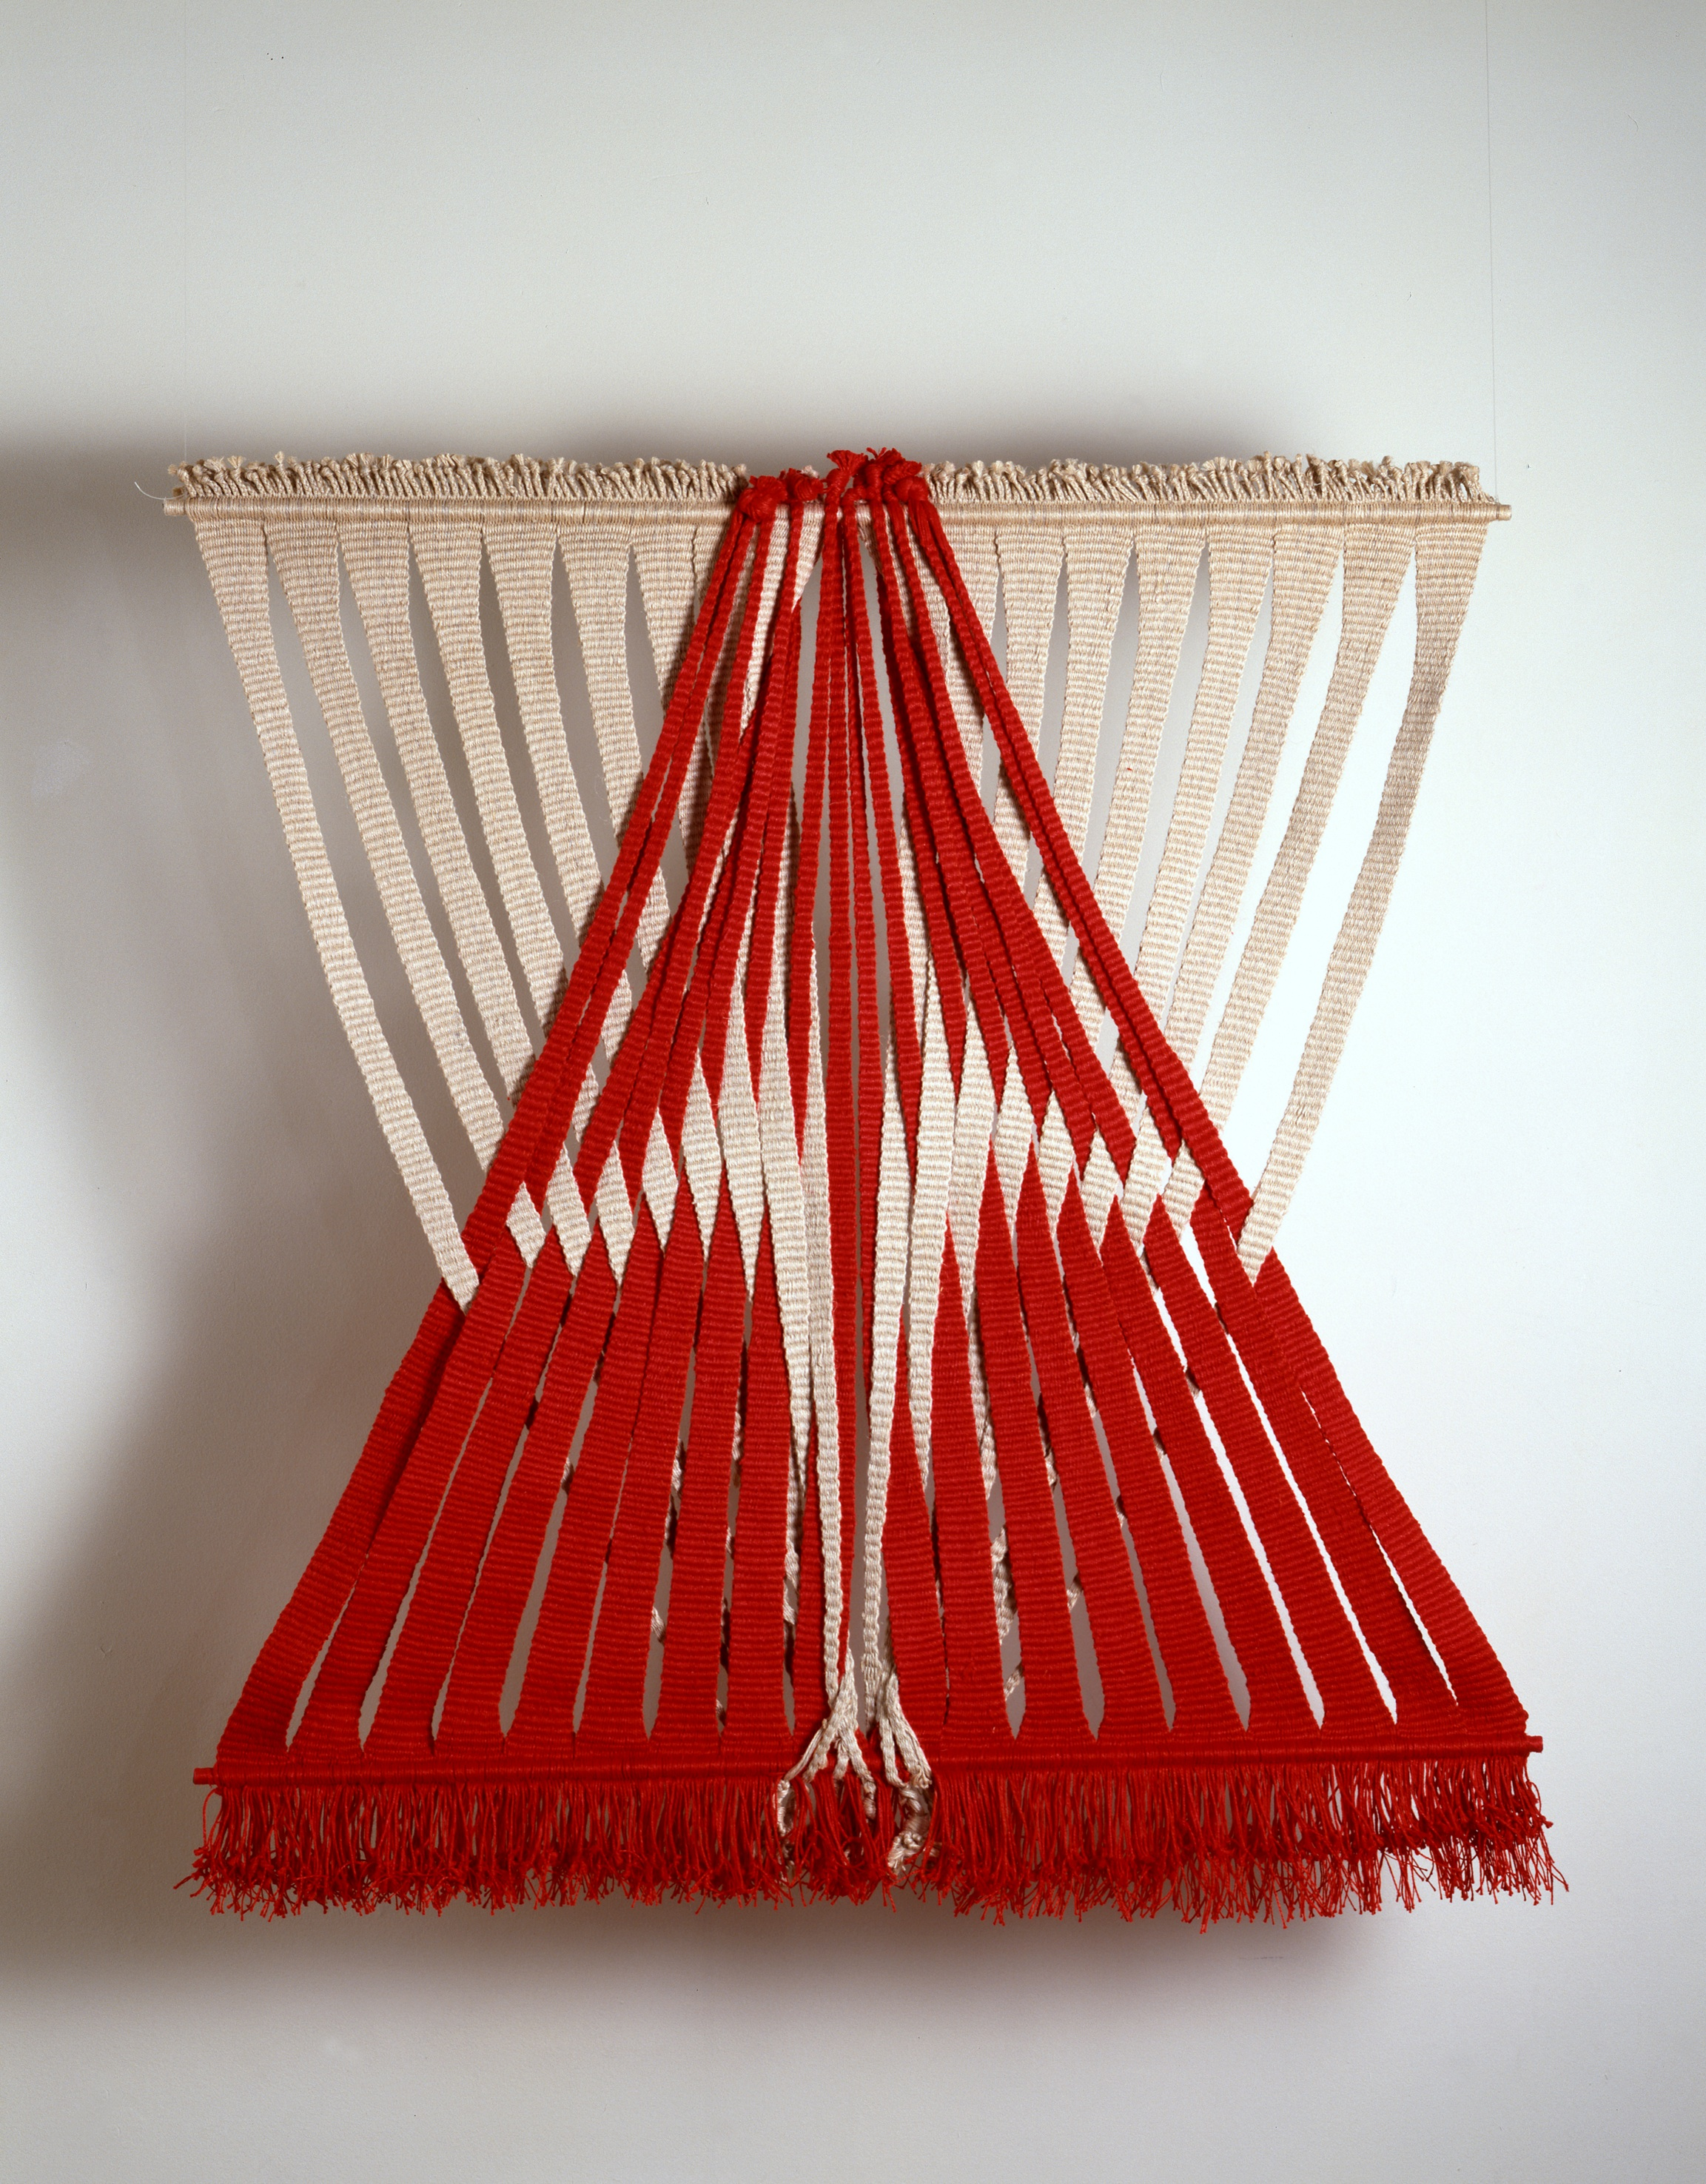 Lenore Tawney,  Union of Water and Fire , 1974, Linen, 38 x 36 inches. Collection of Lenore G. Tawney Foundation.